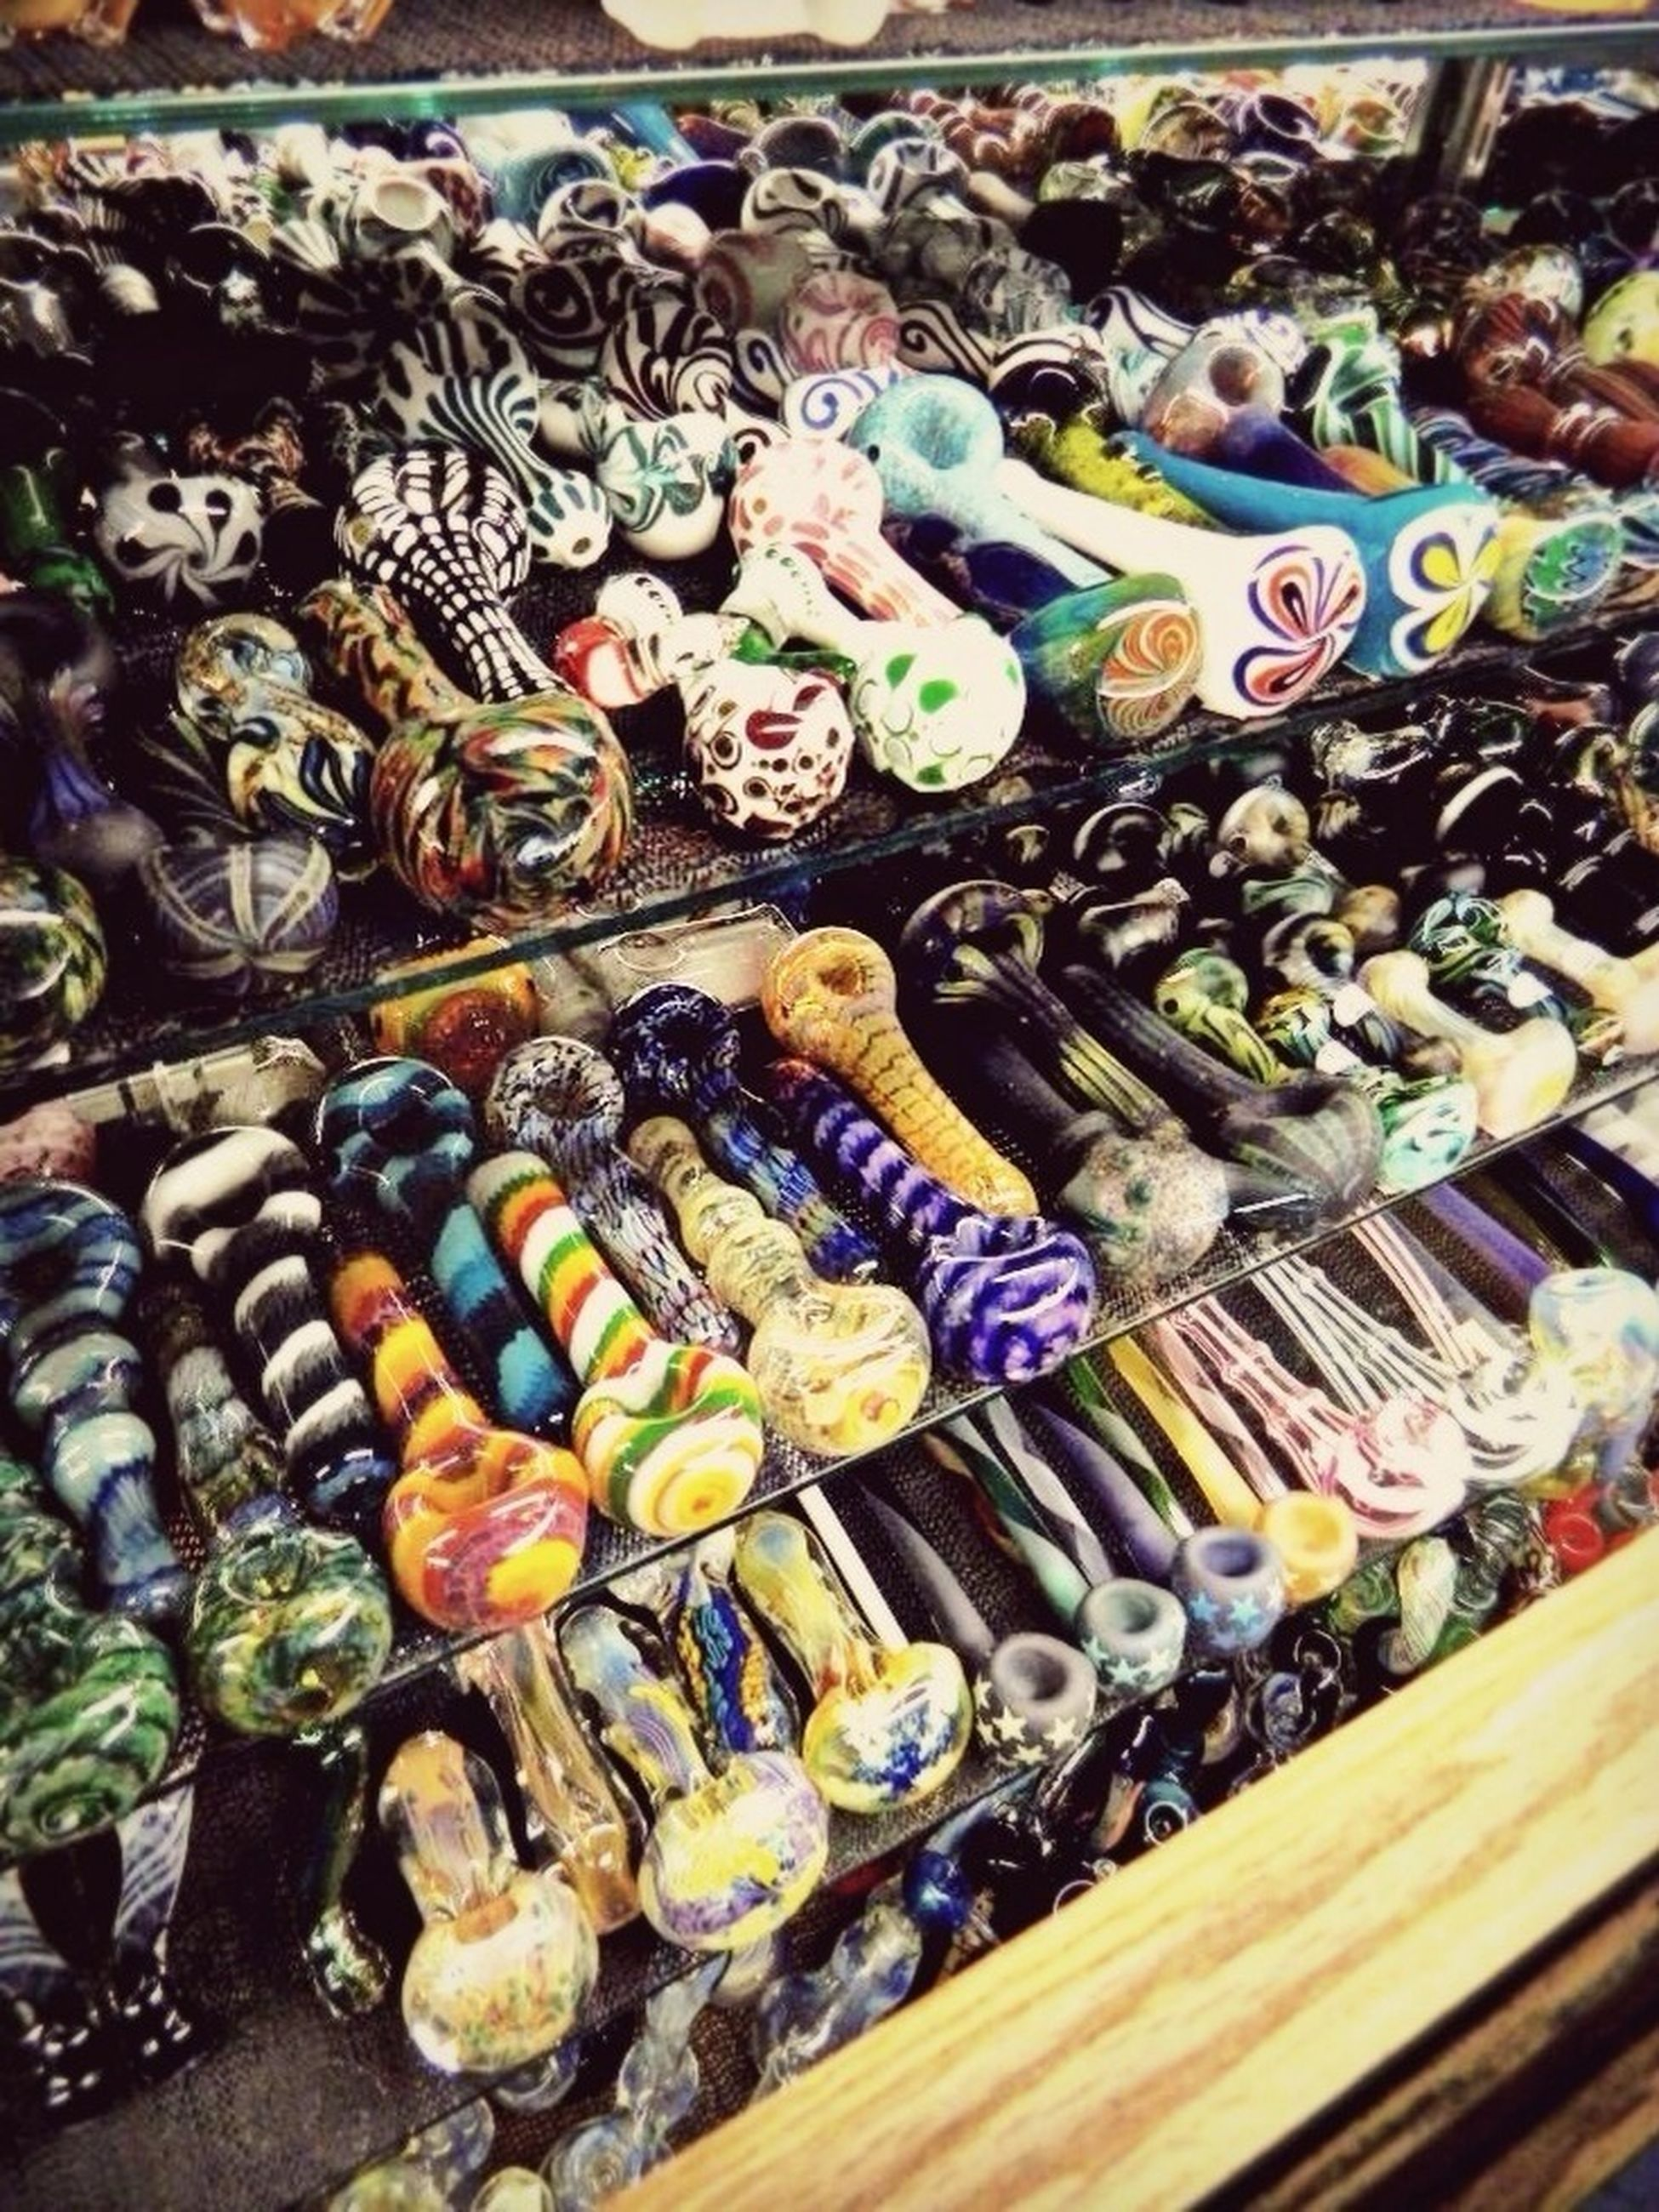 large group of objects, abundance, variation, high angle view, full frame, choice, for sale, backgrounds, still life, arrangement, collection, retail, market, multi colored, indoors, market stall, display, heap, no people, close-up